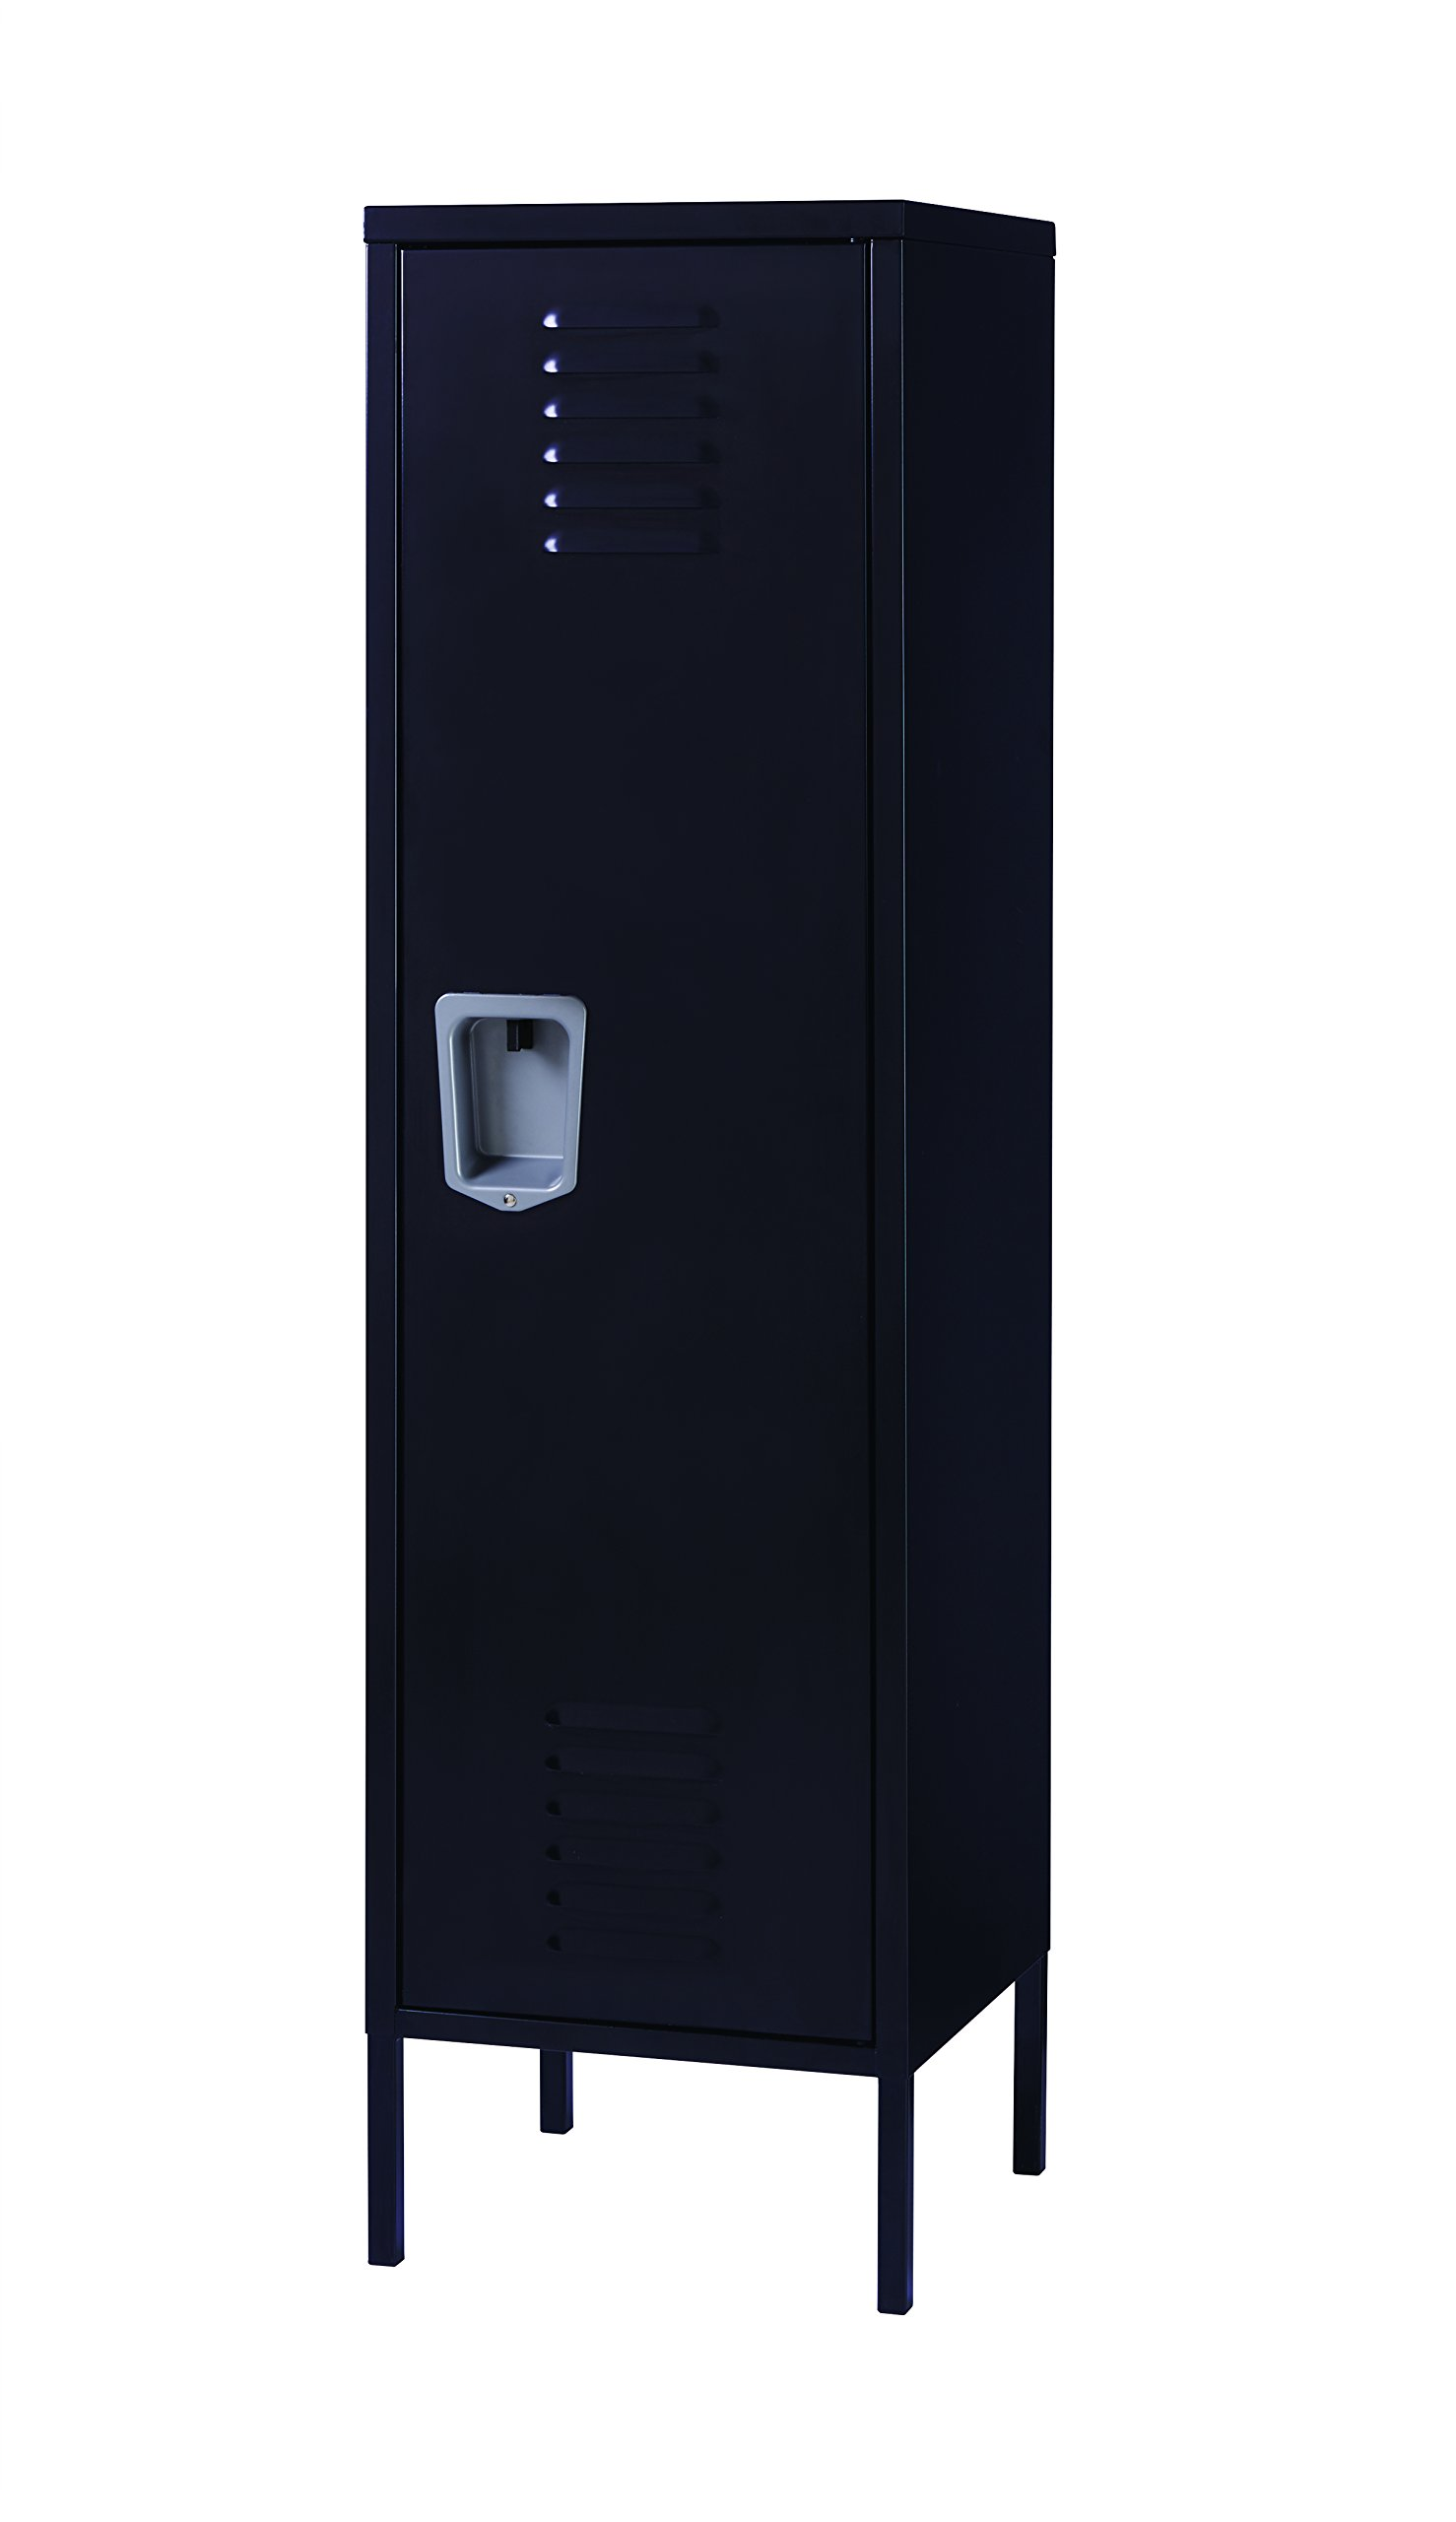 Space Solutions Personal Storage Cabinet, Black (21898)